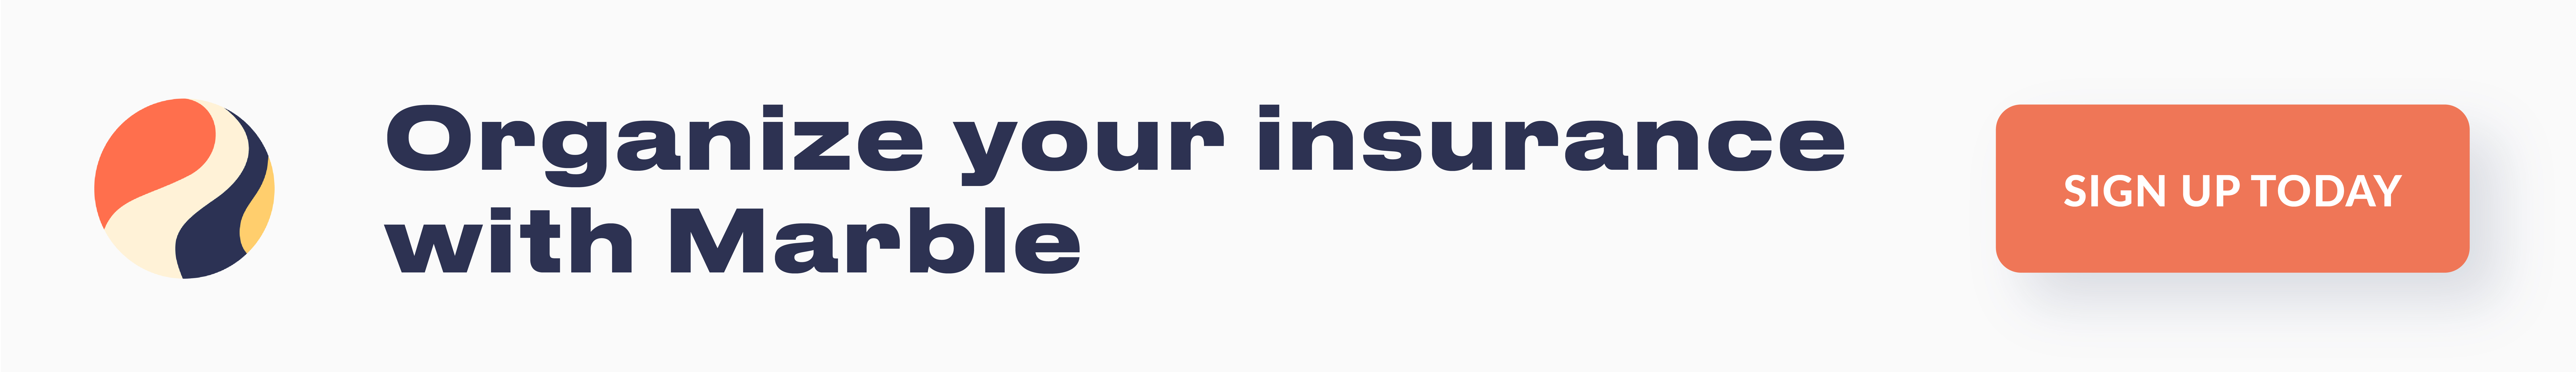 Optimize your insurance with Marble